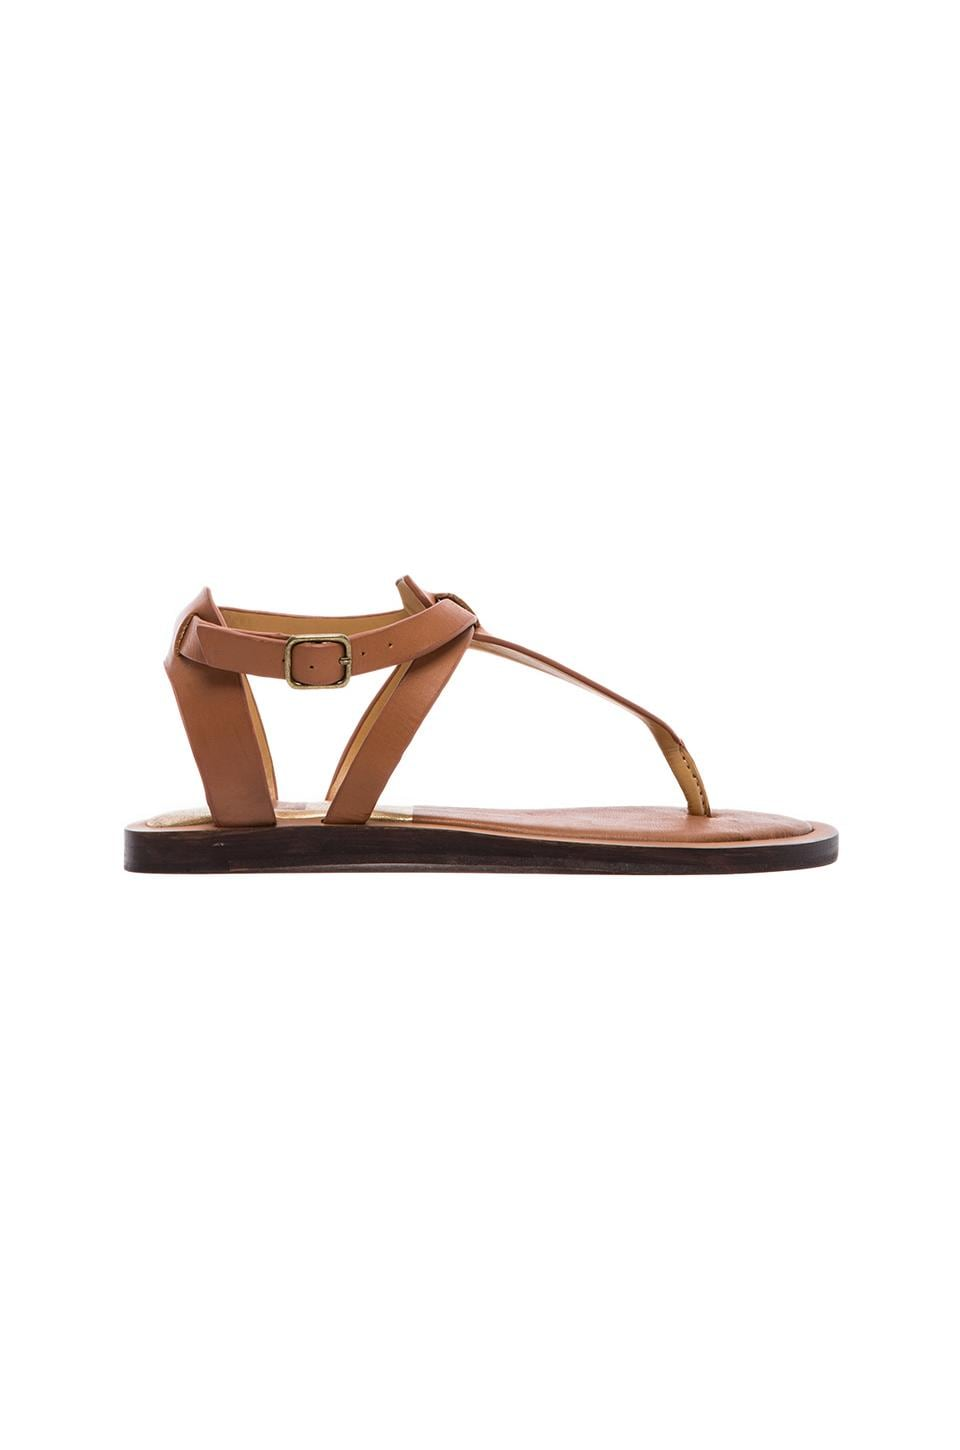 Dolce Vita Fabia Sandal in Saddle